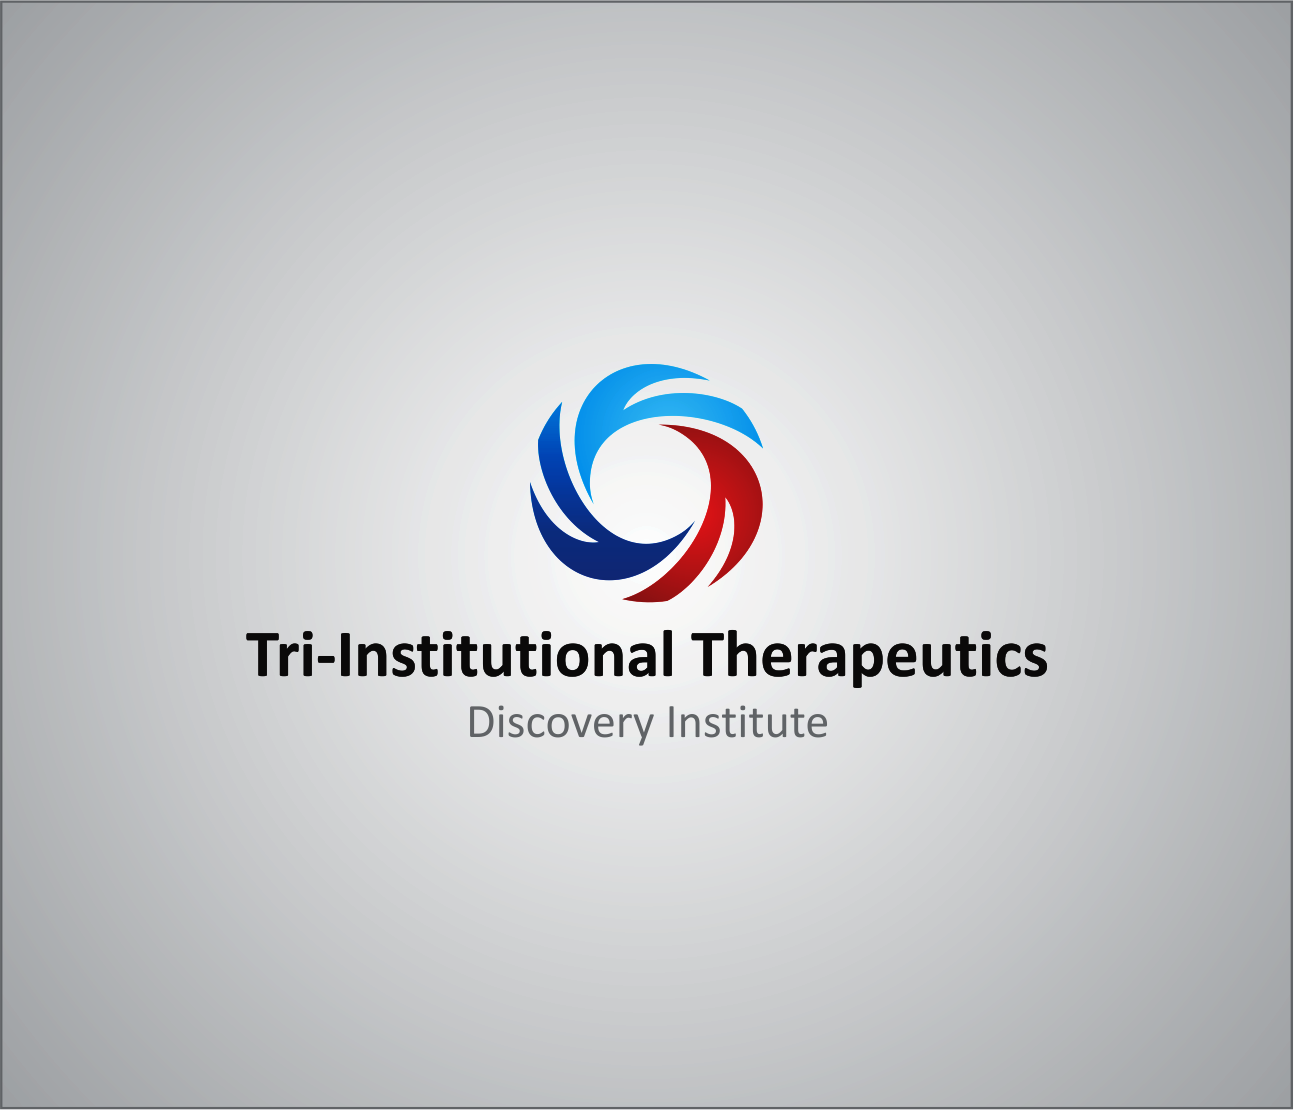 Logo Design by Armada Jamaluddin - Entry No. 109 in the Logo Design Contest Inspiring Logo Design for Tri-Institutional Therapeutics Discovery Institute.